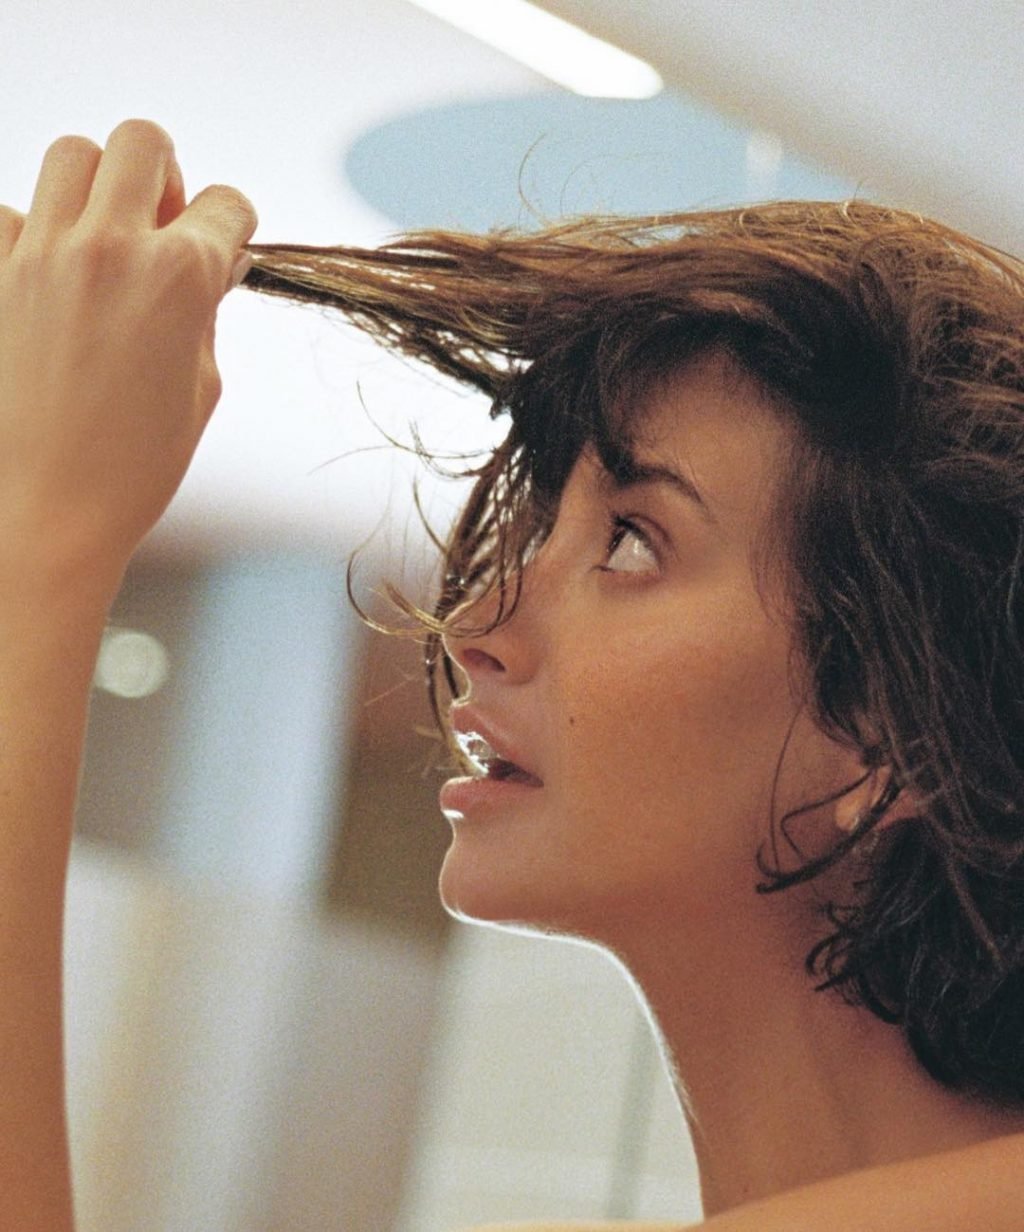 The 7 Deadly Hair Sins Ruining Your Locks (Without You Realizing It)